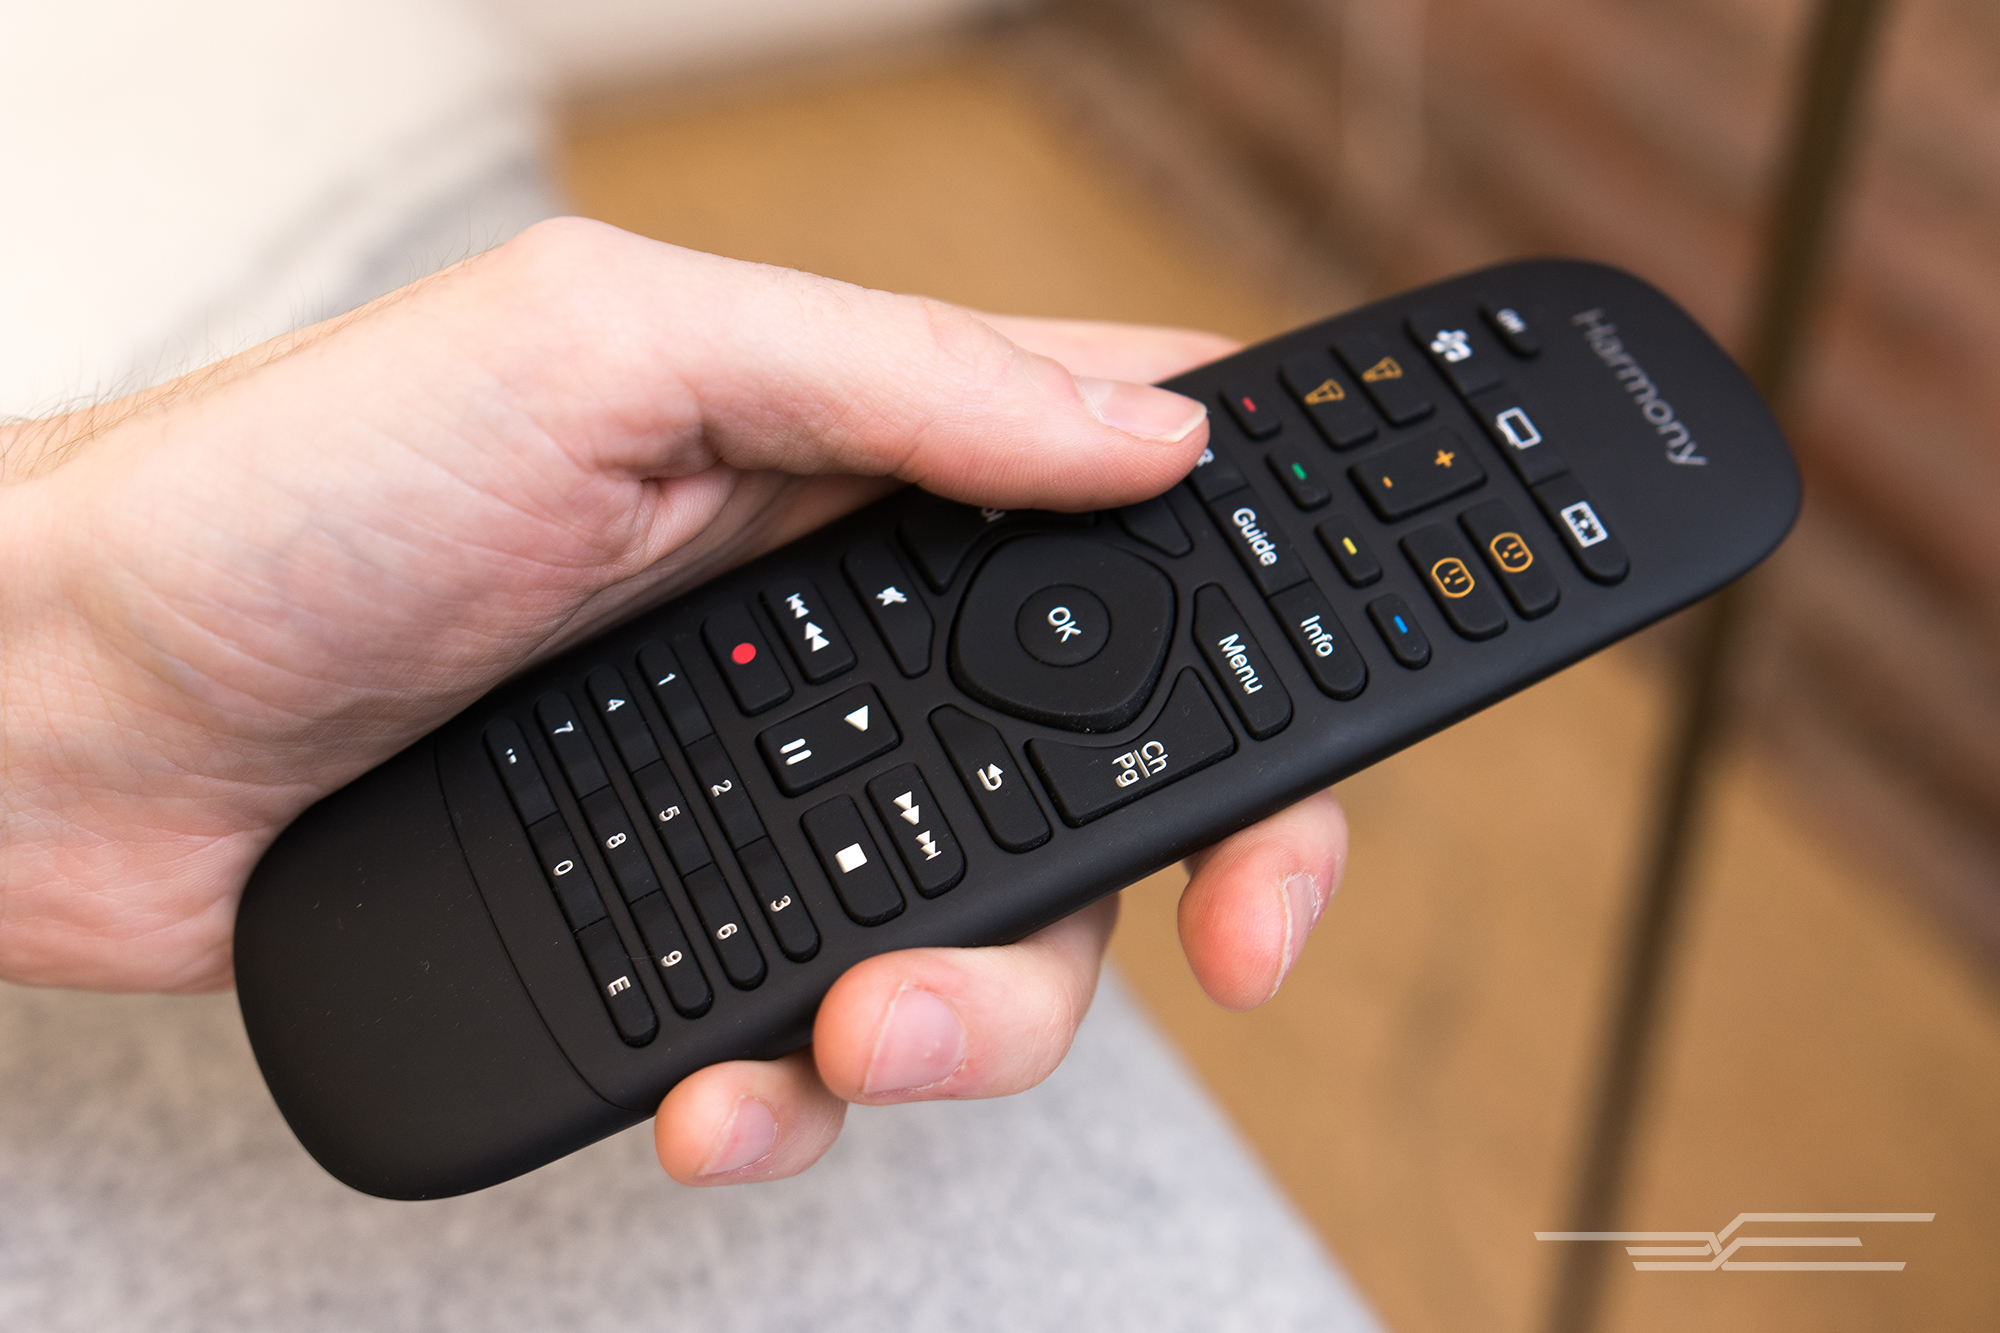 The best universal remote control